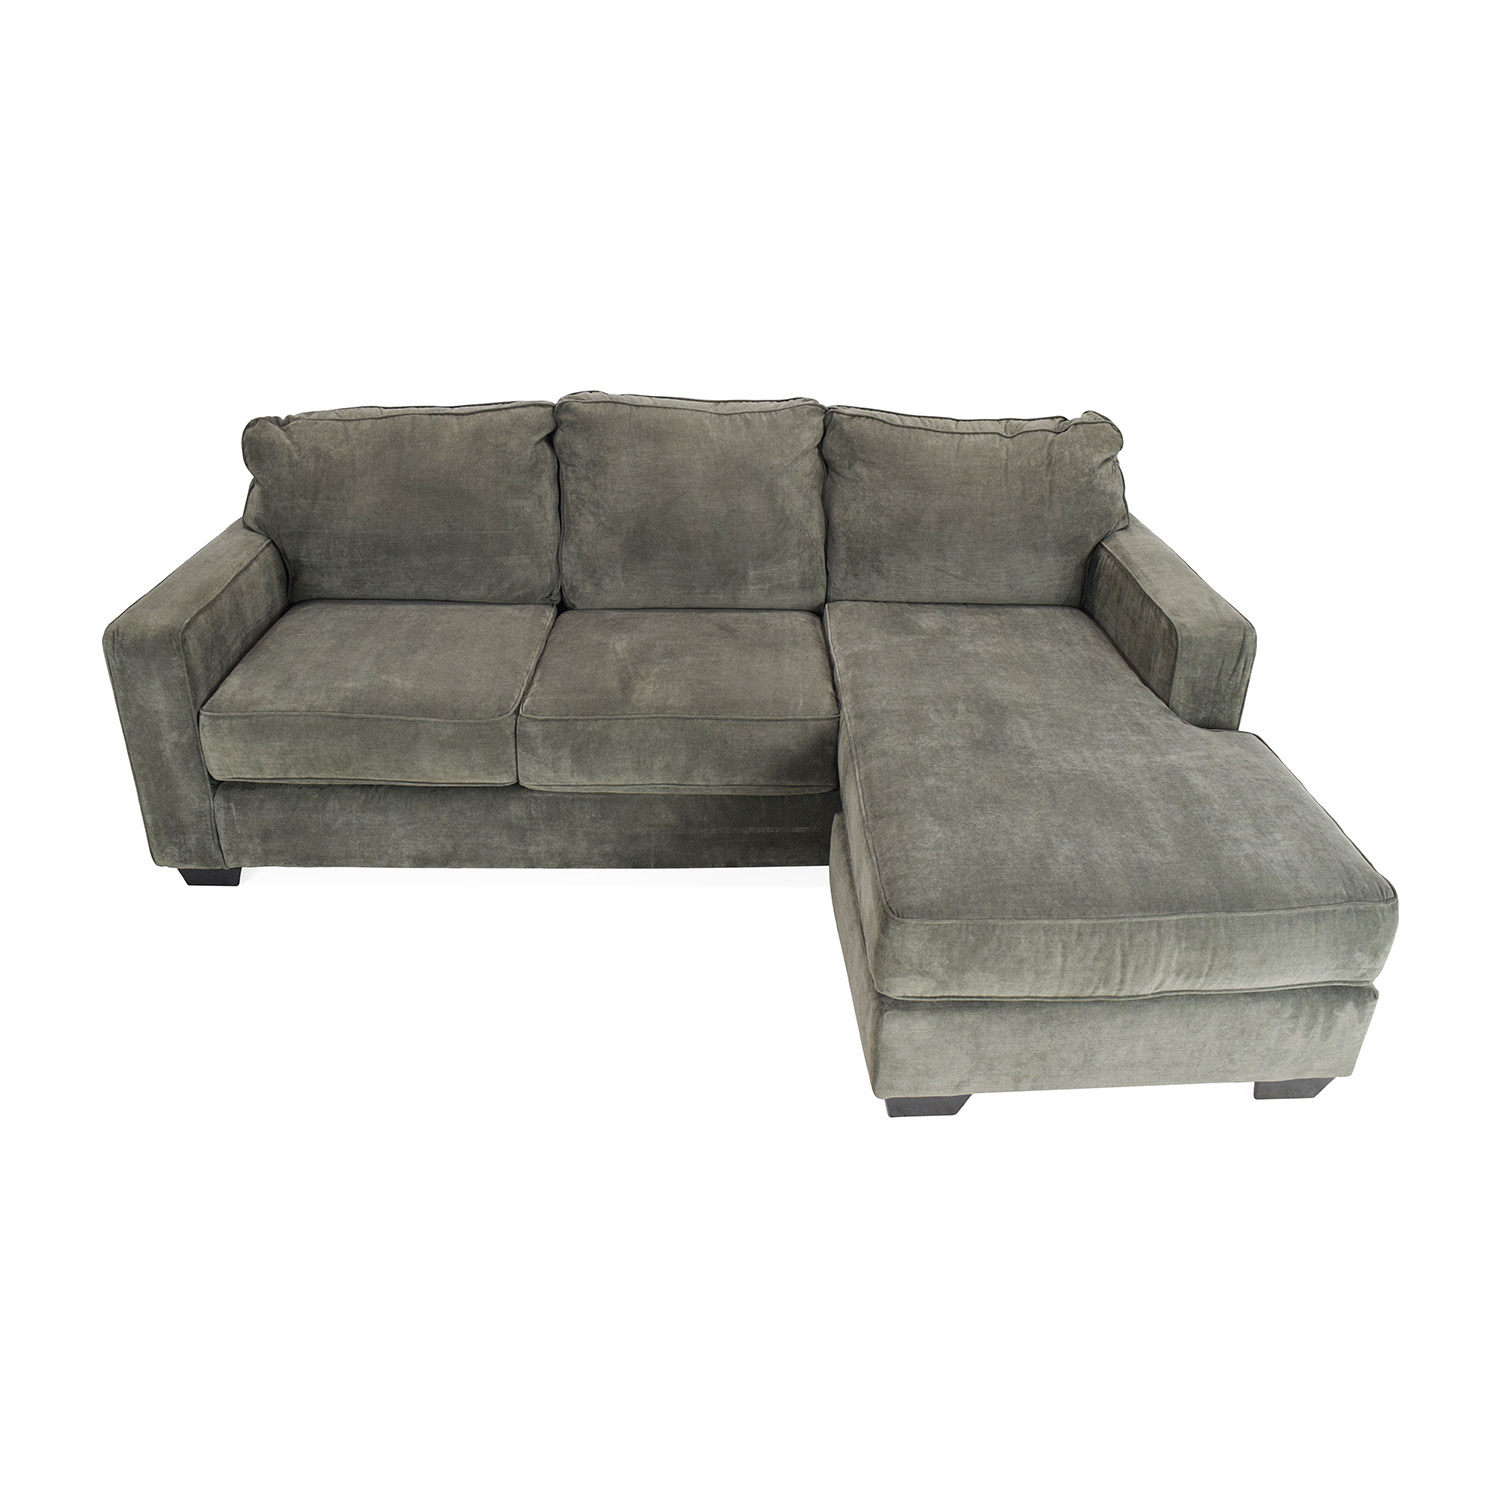 shop Jennifer Convertibles Sectional Sofa Jennifer Convertibles Sectionals